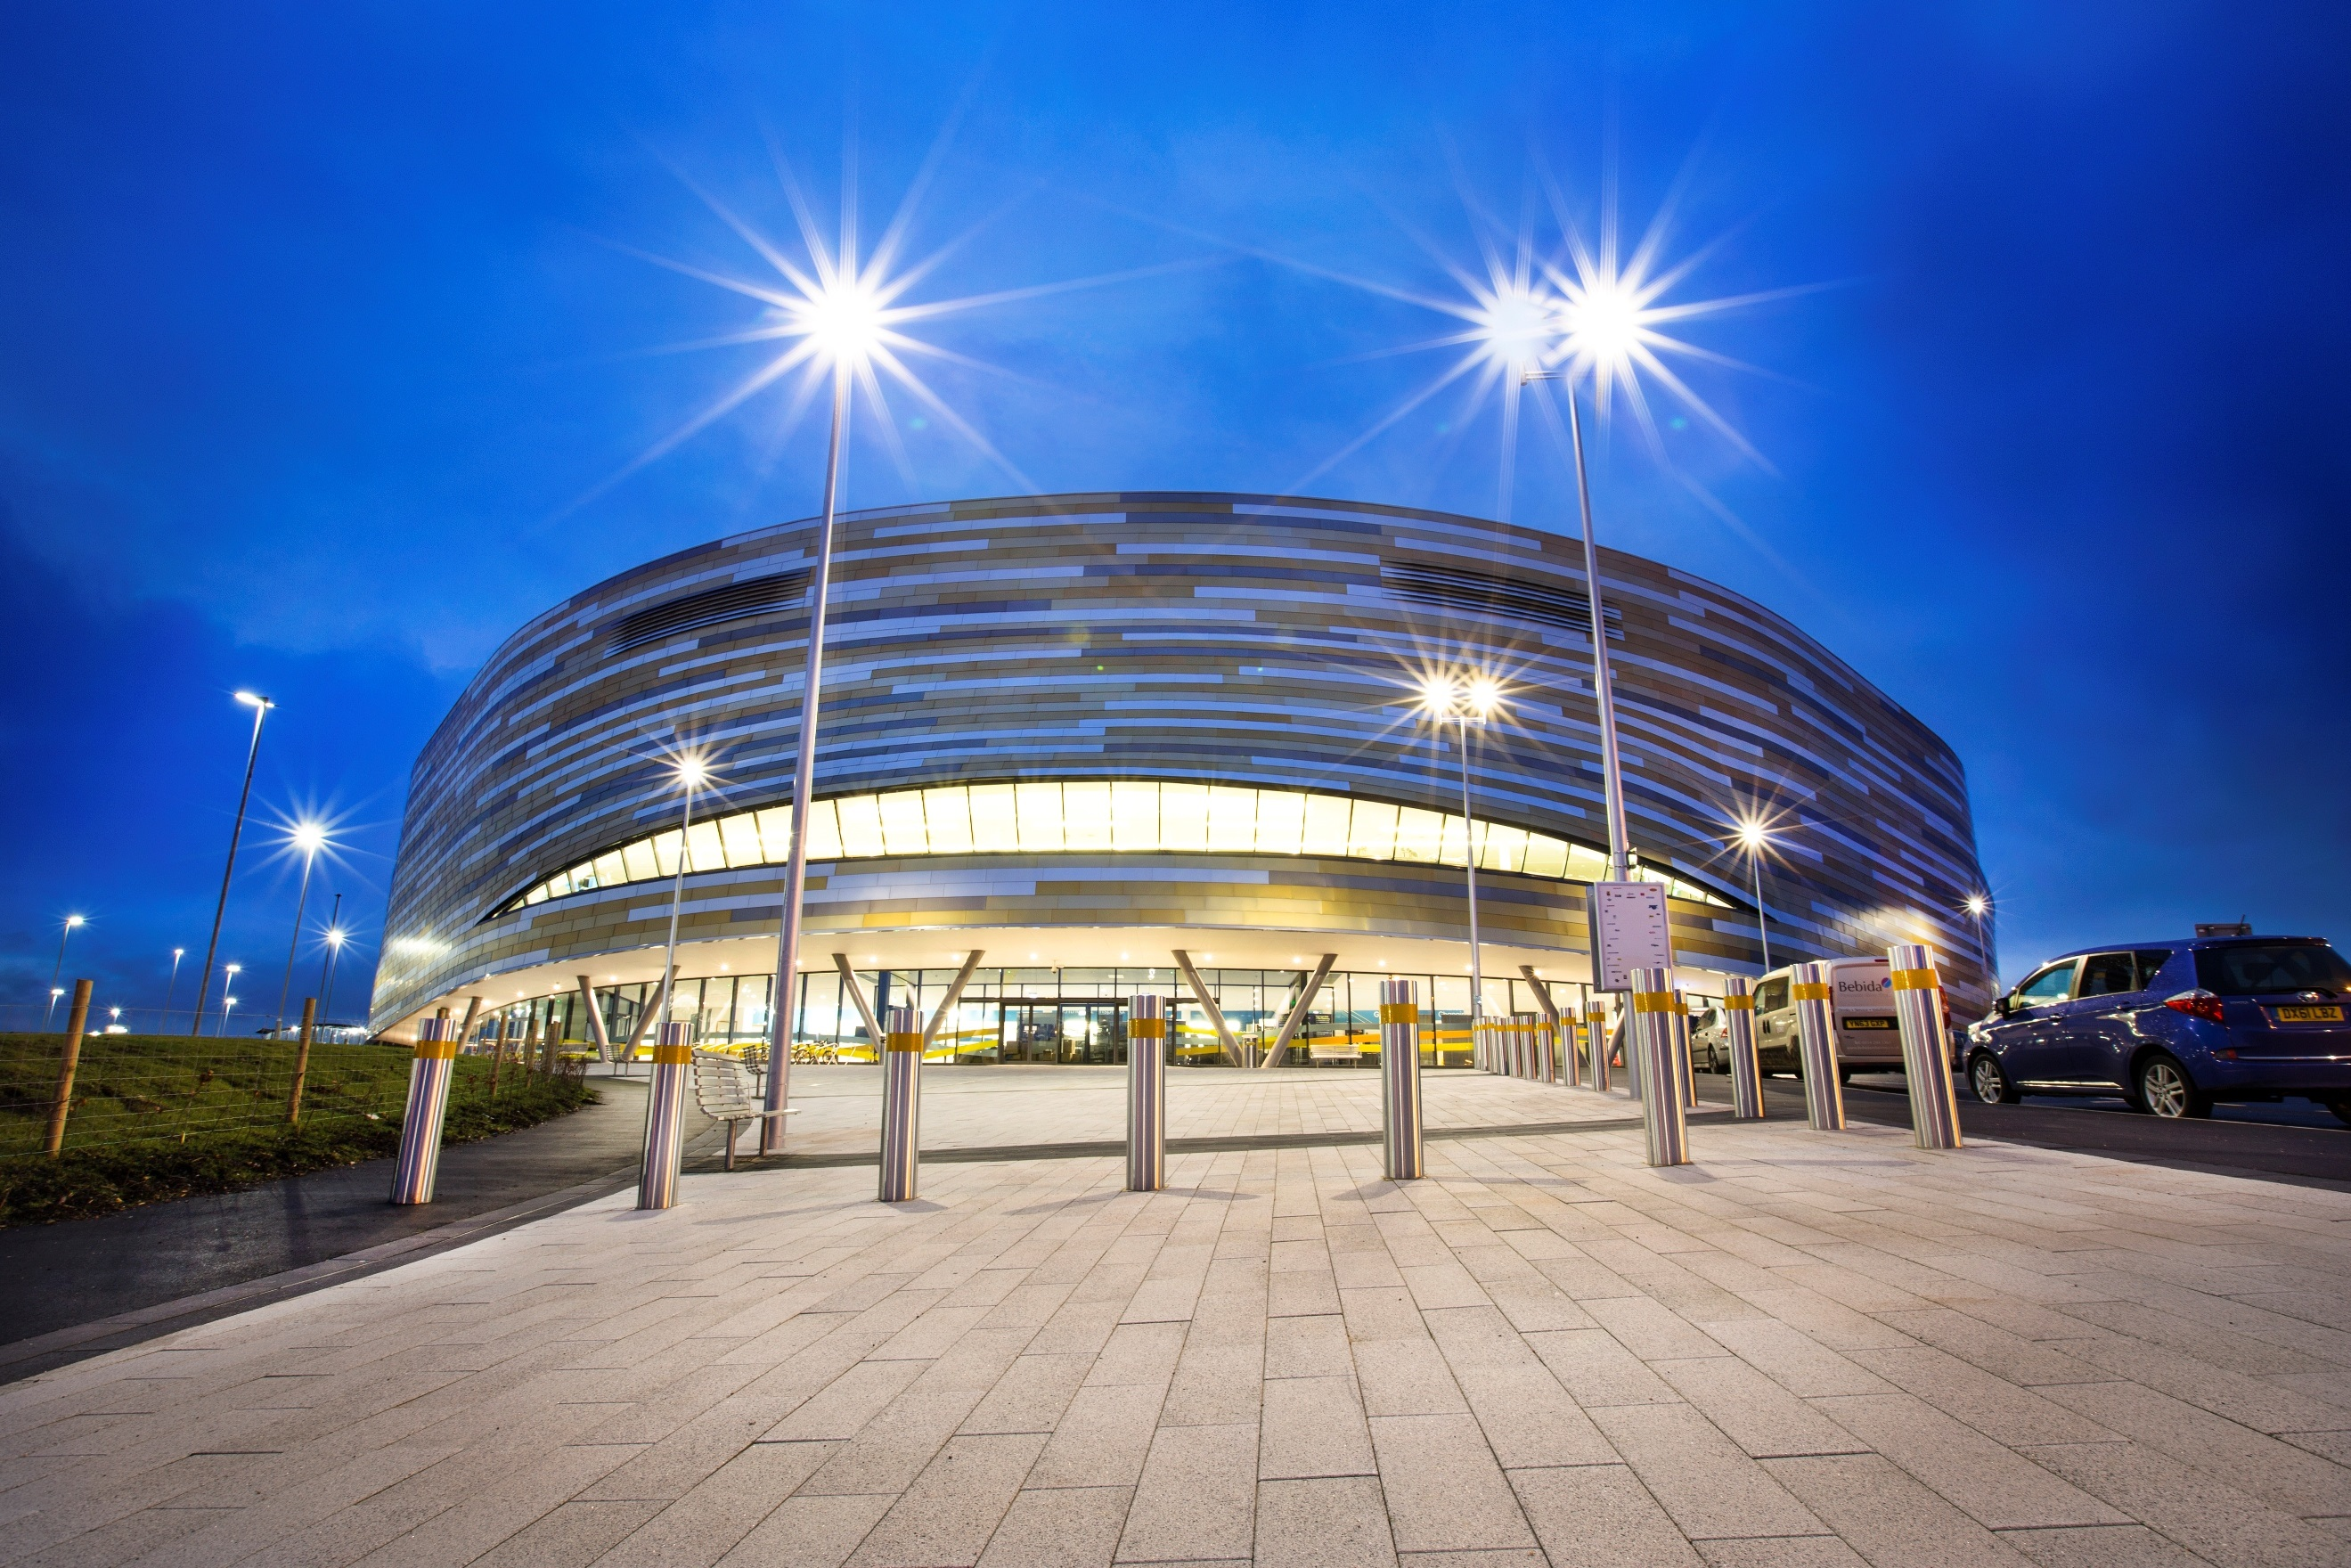 An image of the outside of the Derby Arena building